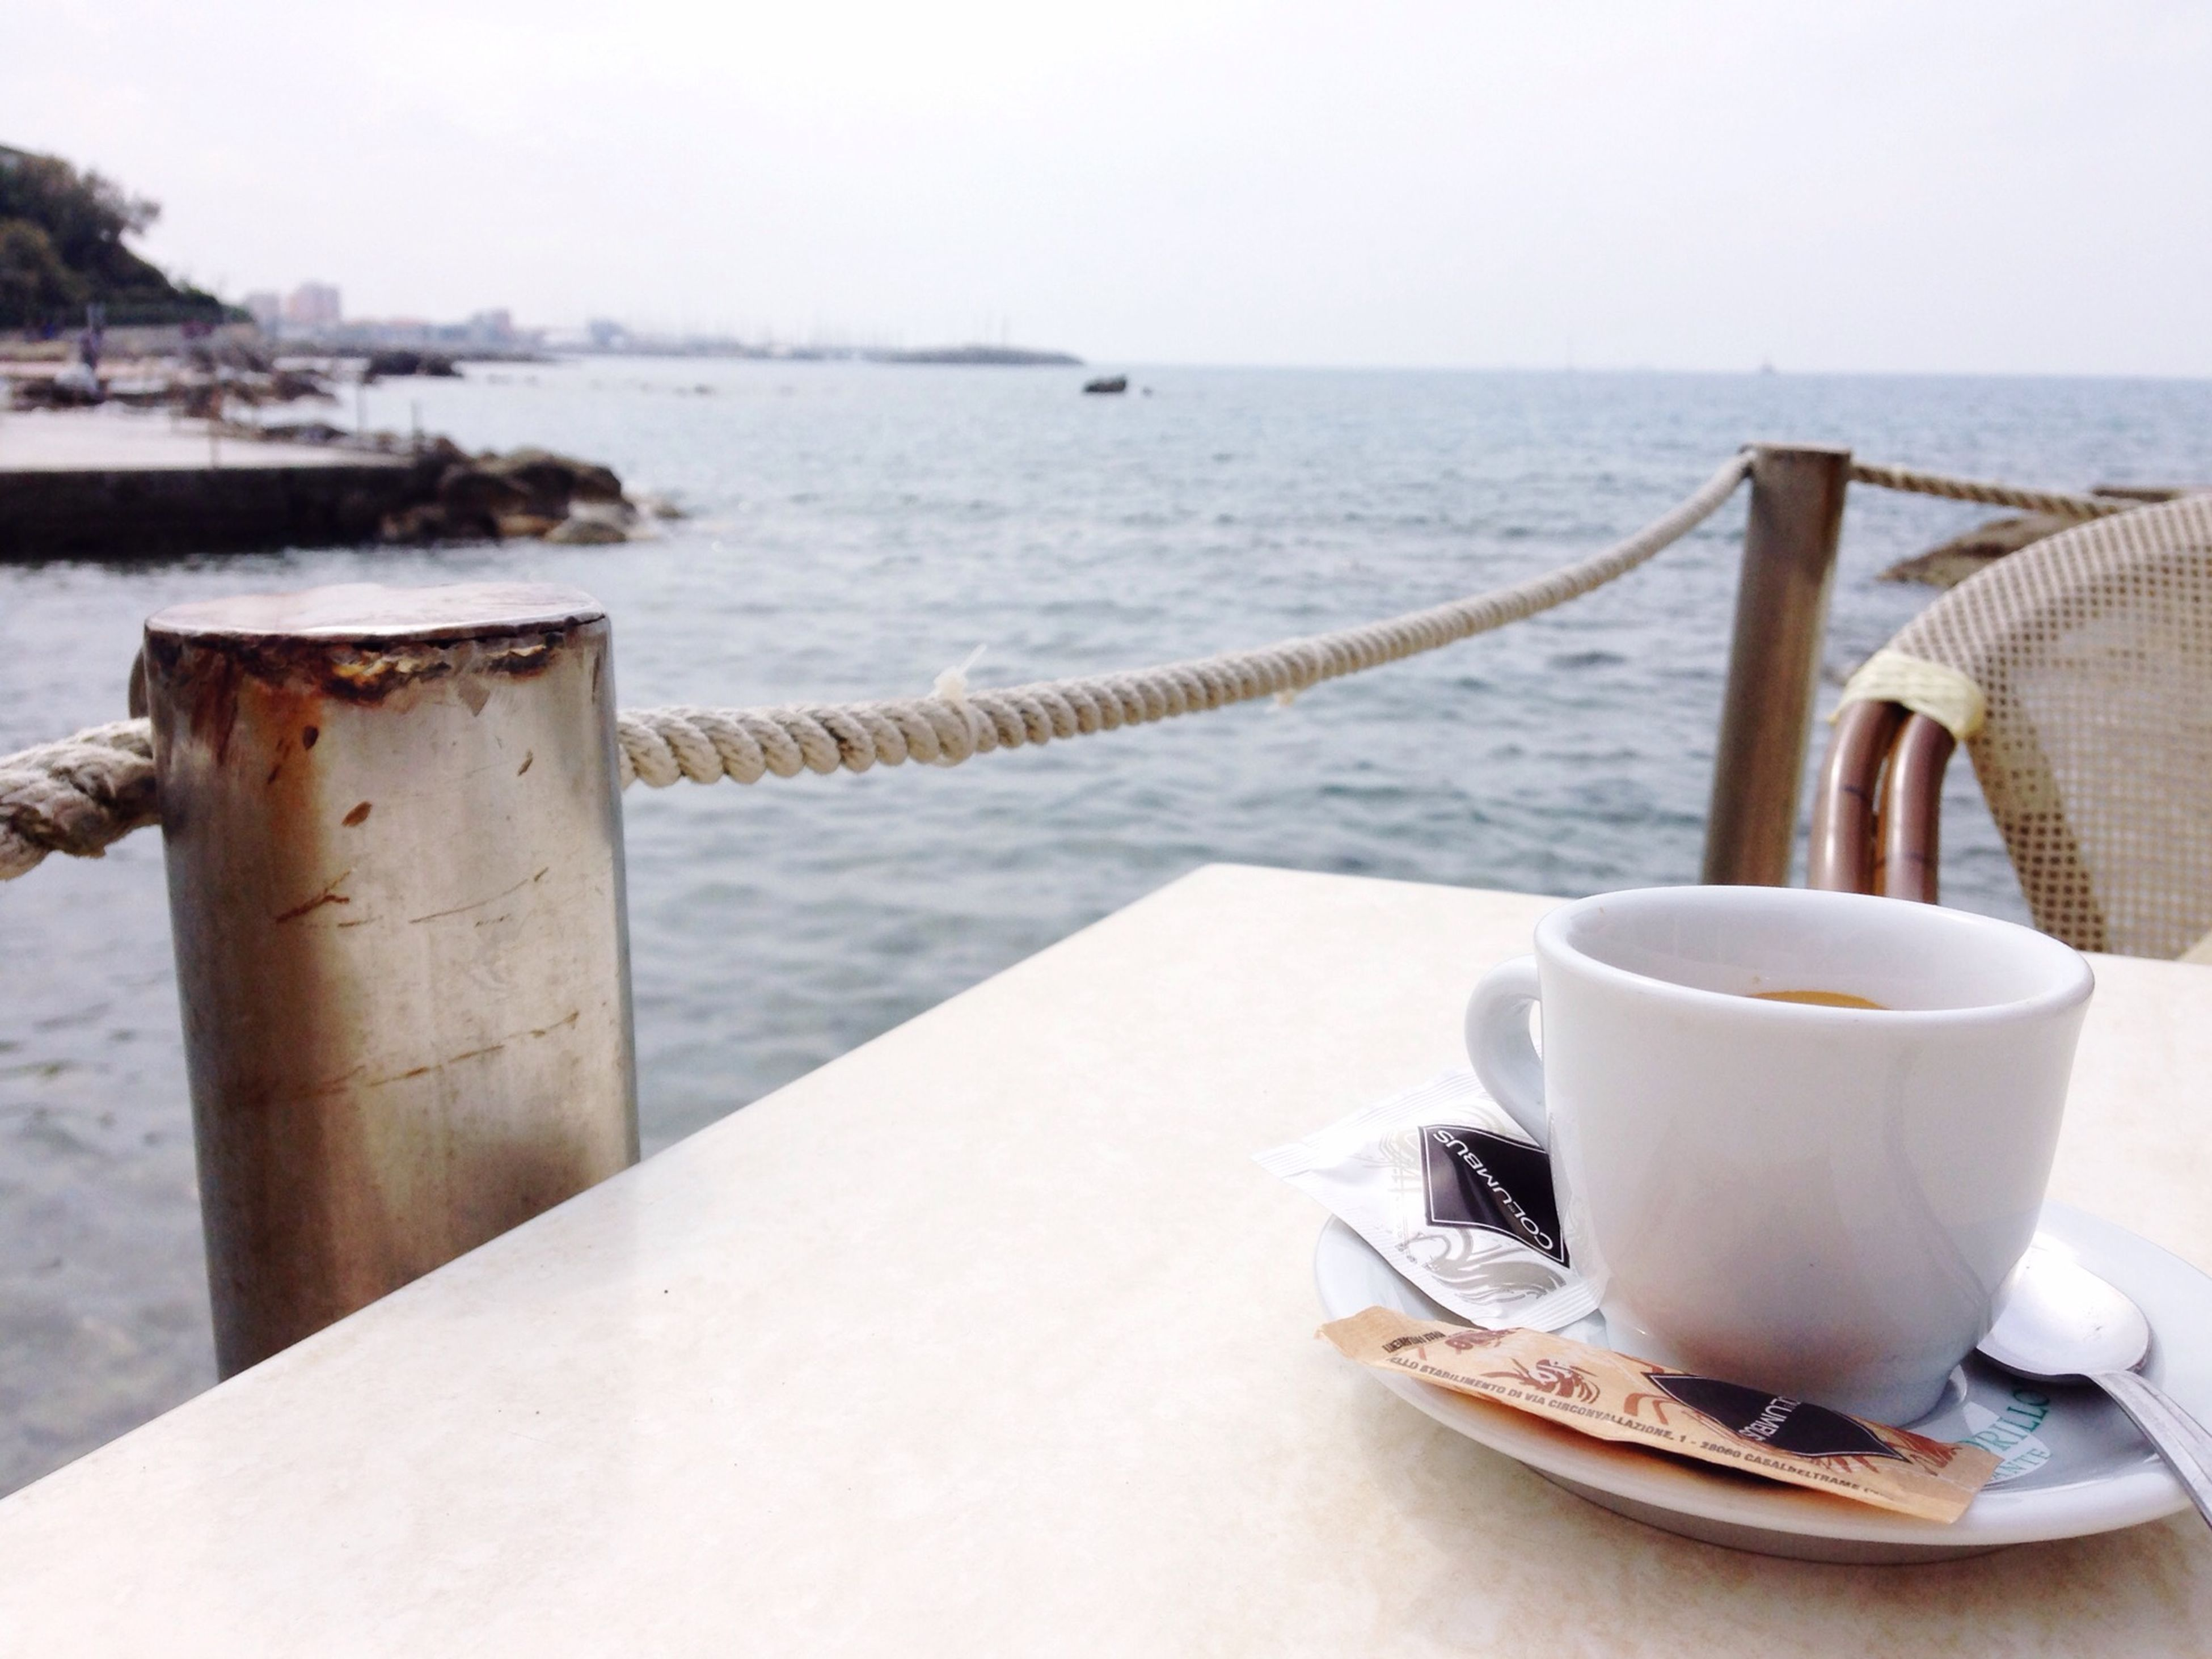 coffee cup, water, drink, food and drink, refreshment, sea, table, saucer, coffee - drink, coffee, horizon over water, close-up, focus on foreground, cup, day, no people, wood - material, still life, freshness, wooden